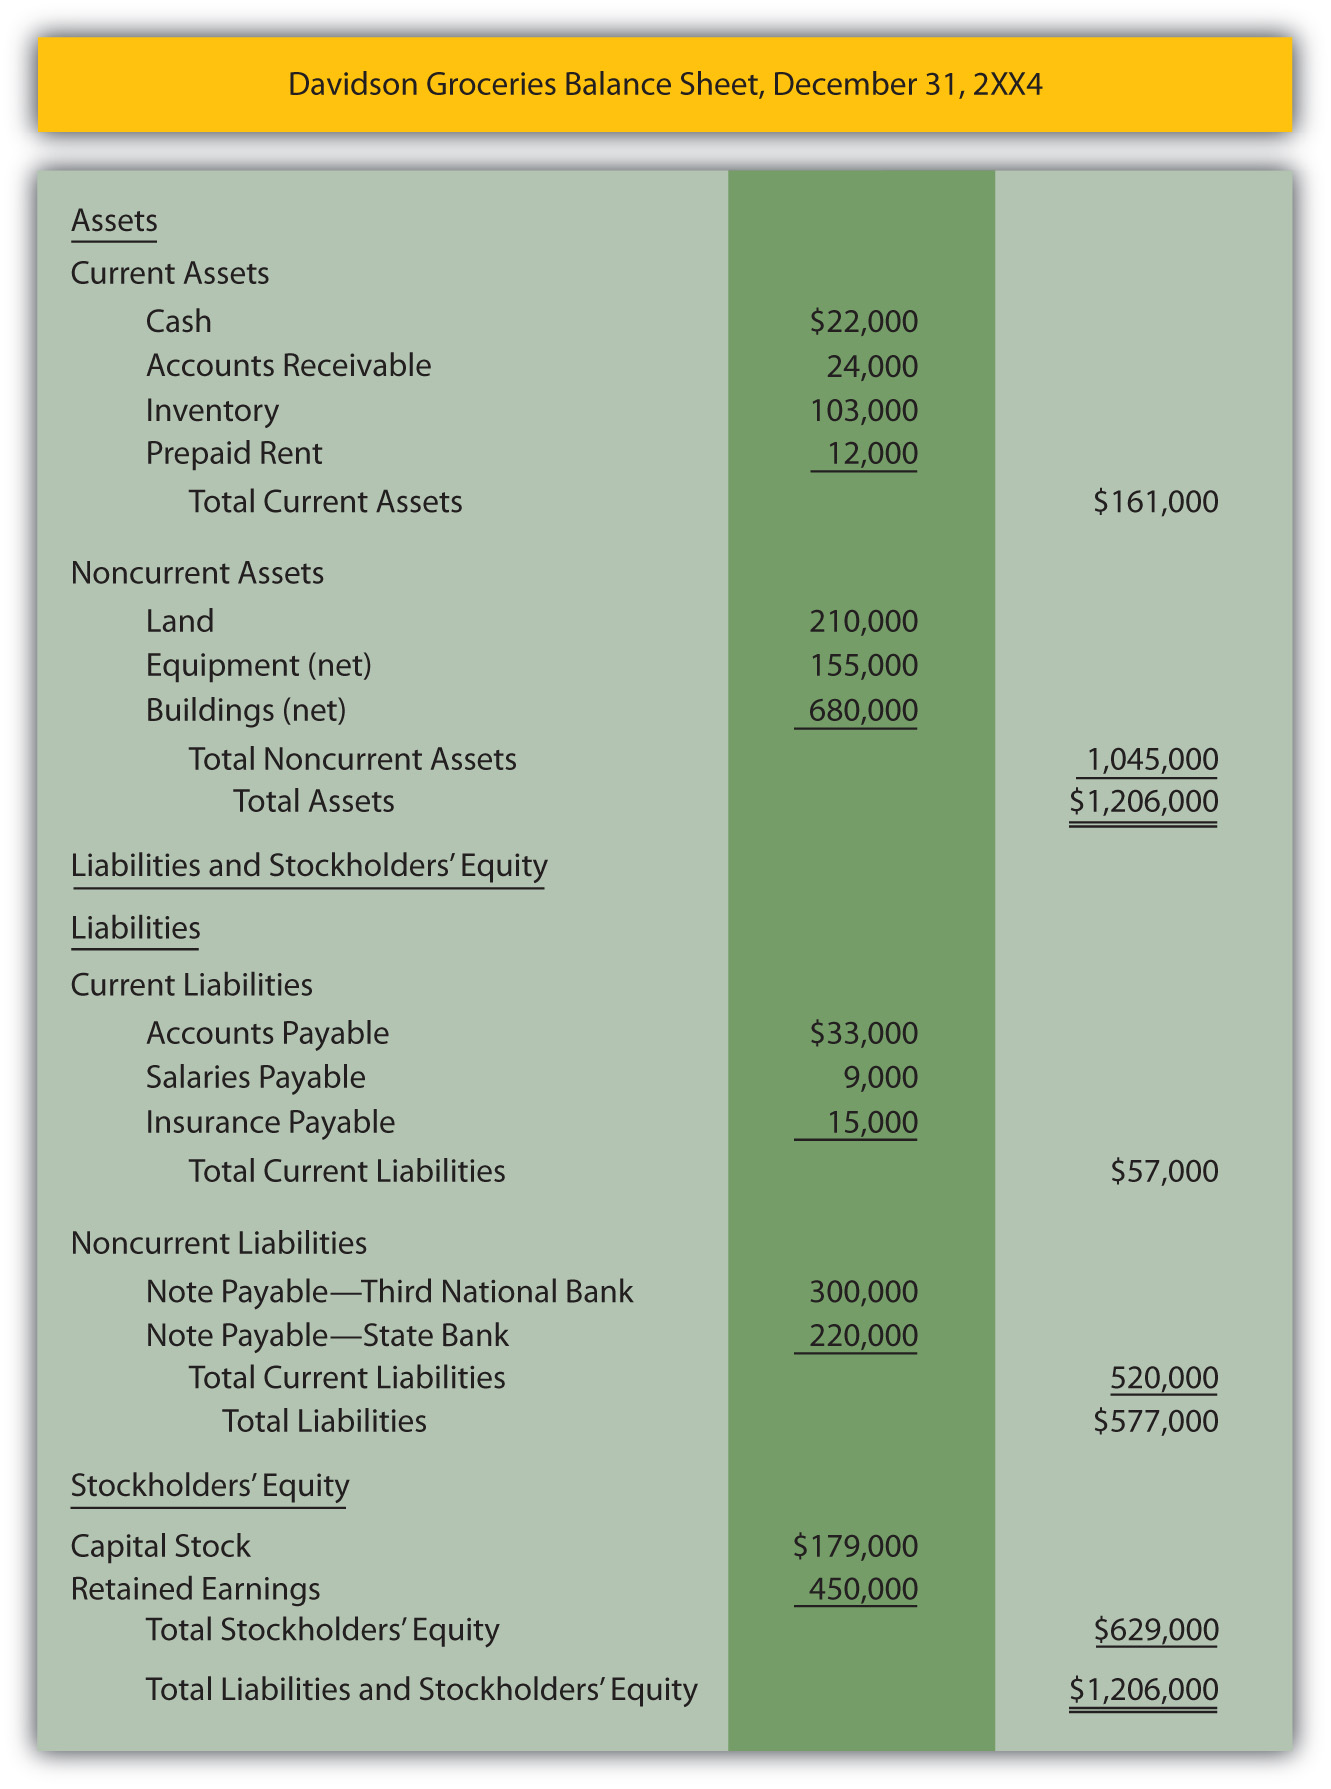 Balance Sheet of Davidson Groceries